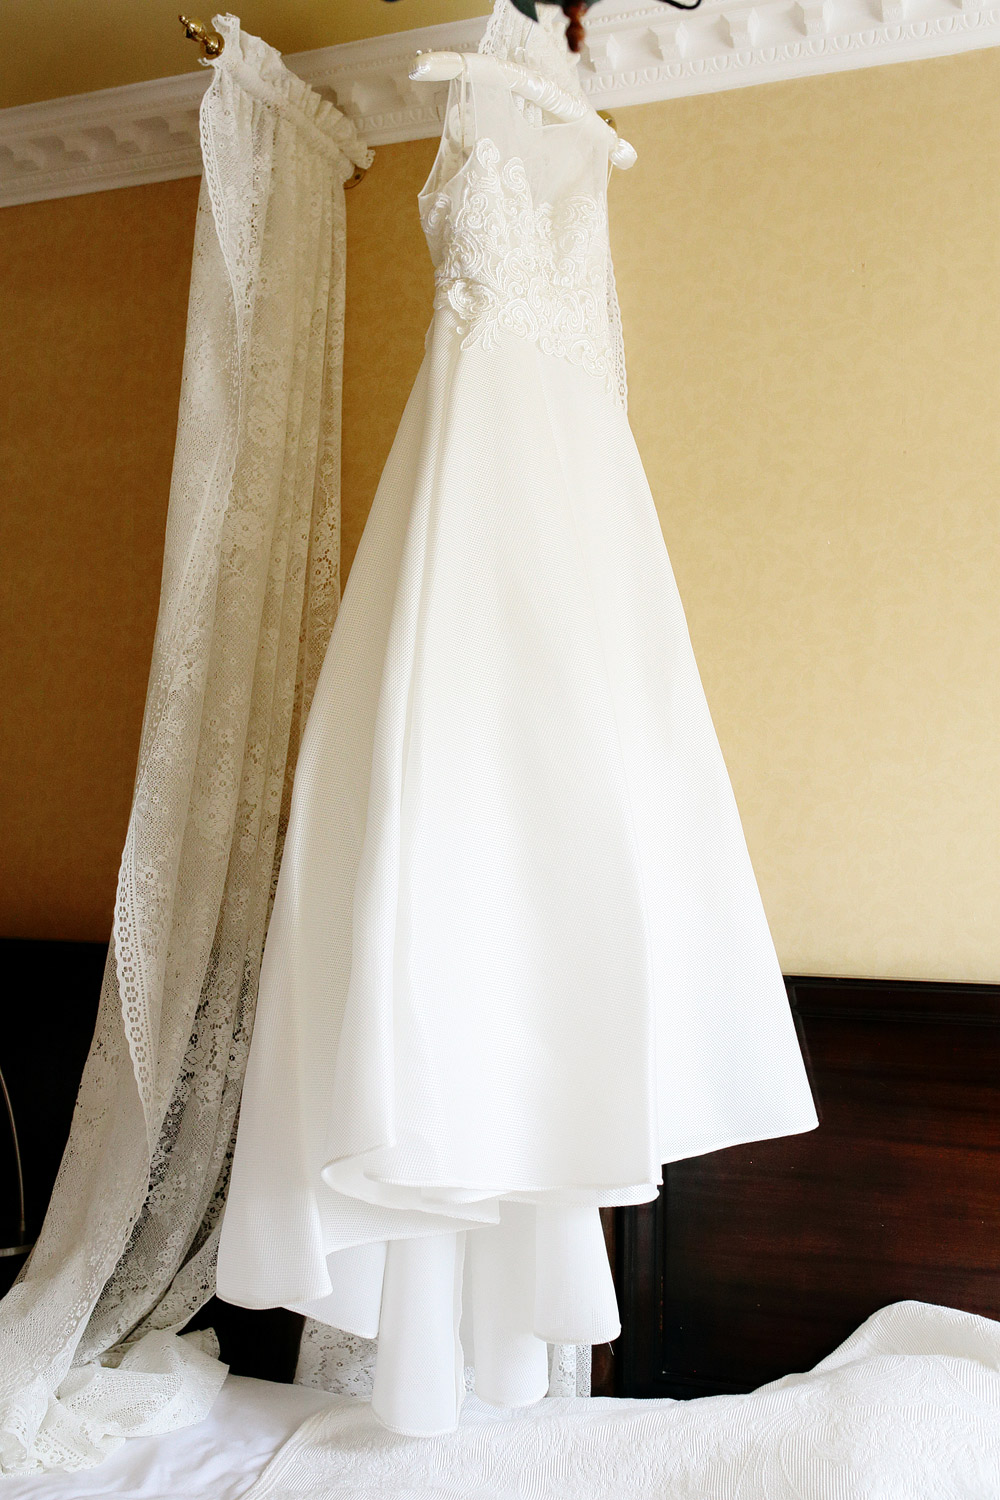 Dromquinna Manor wedding dress photo